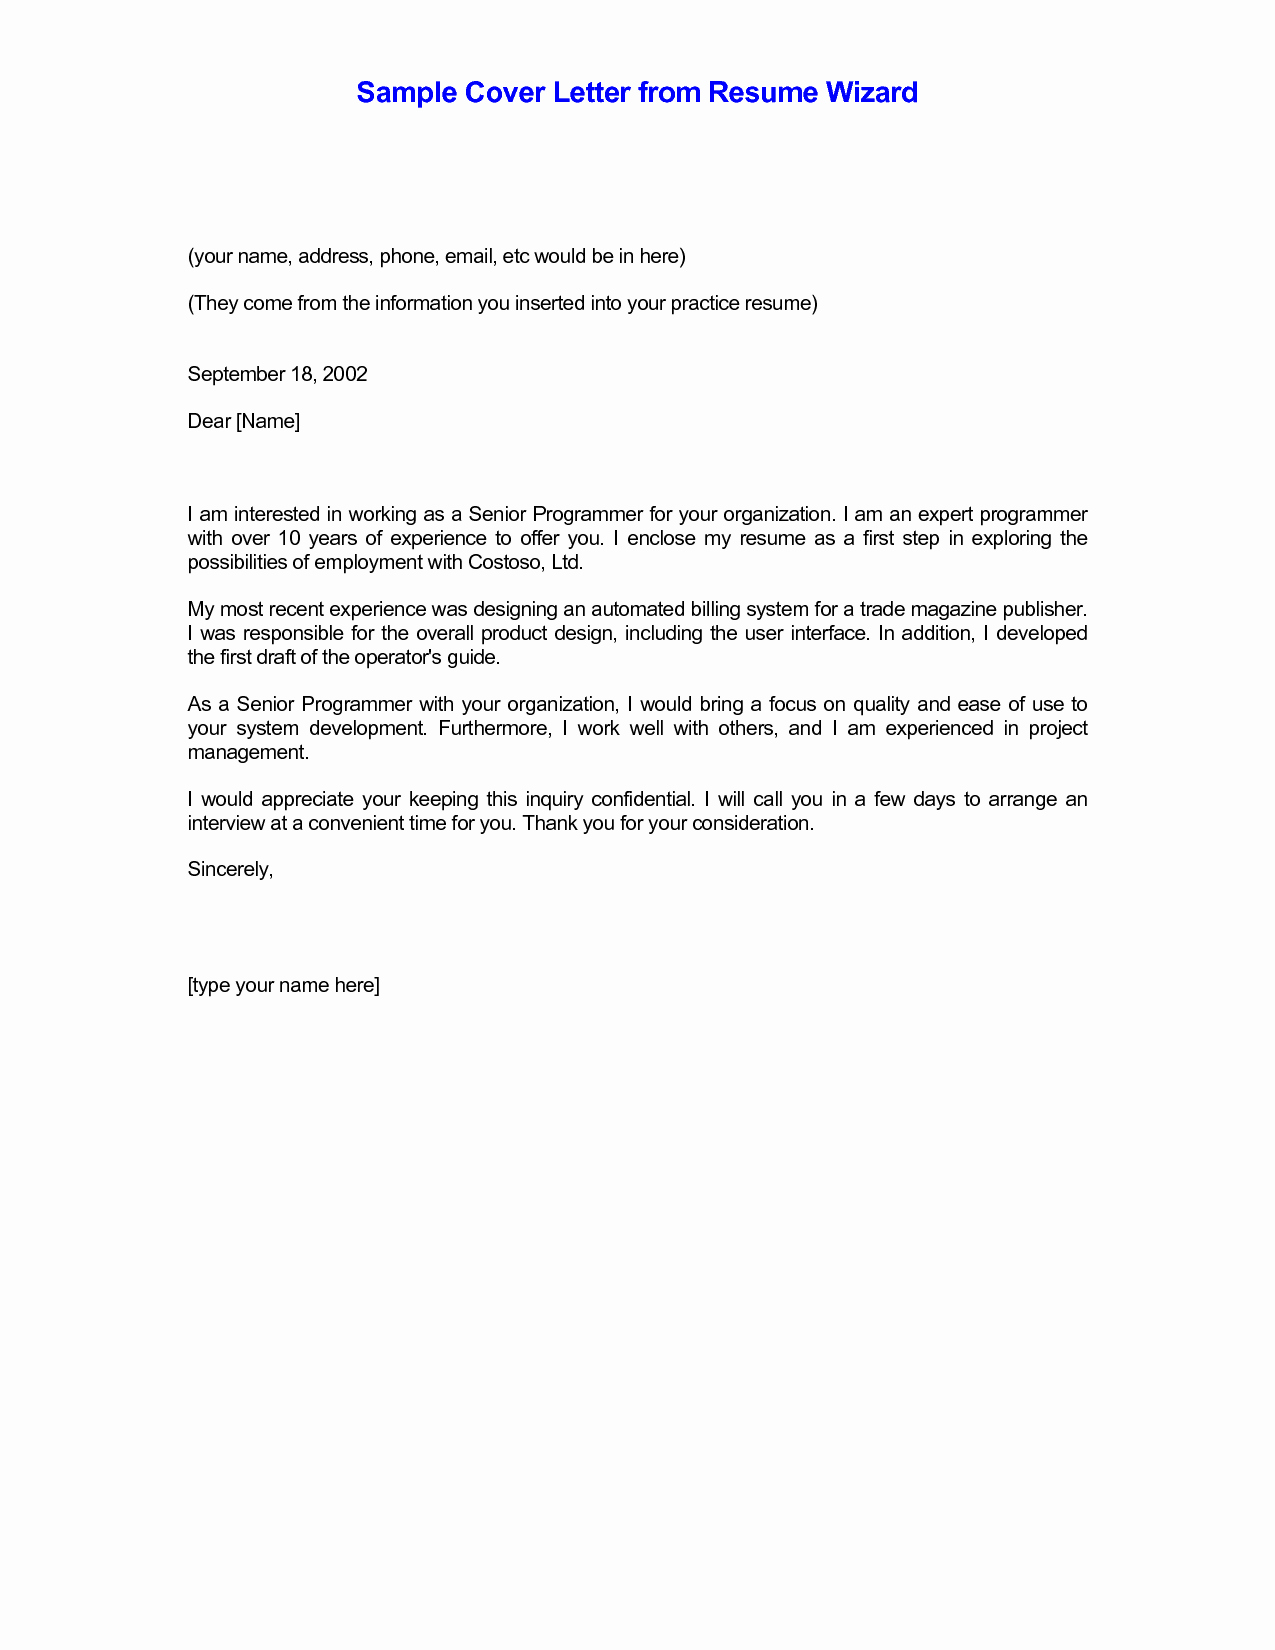 Email Resume Cover Letter Examples Sample Cover Letter for